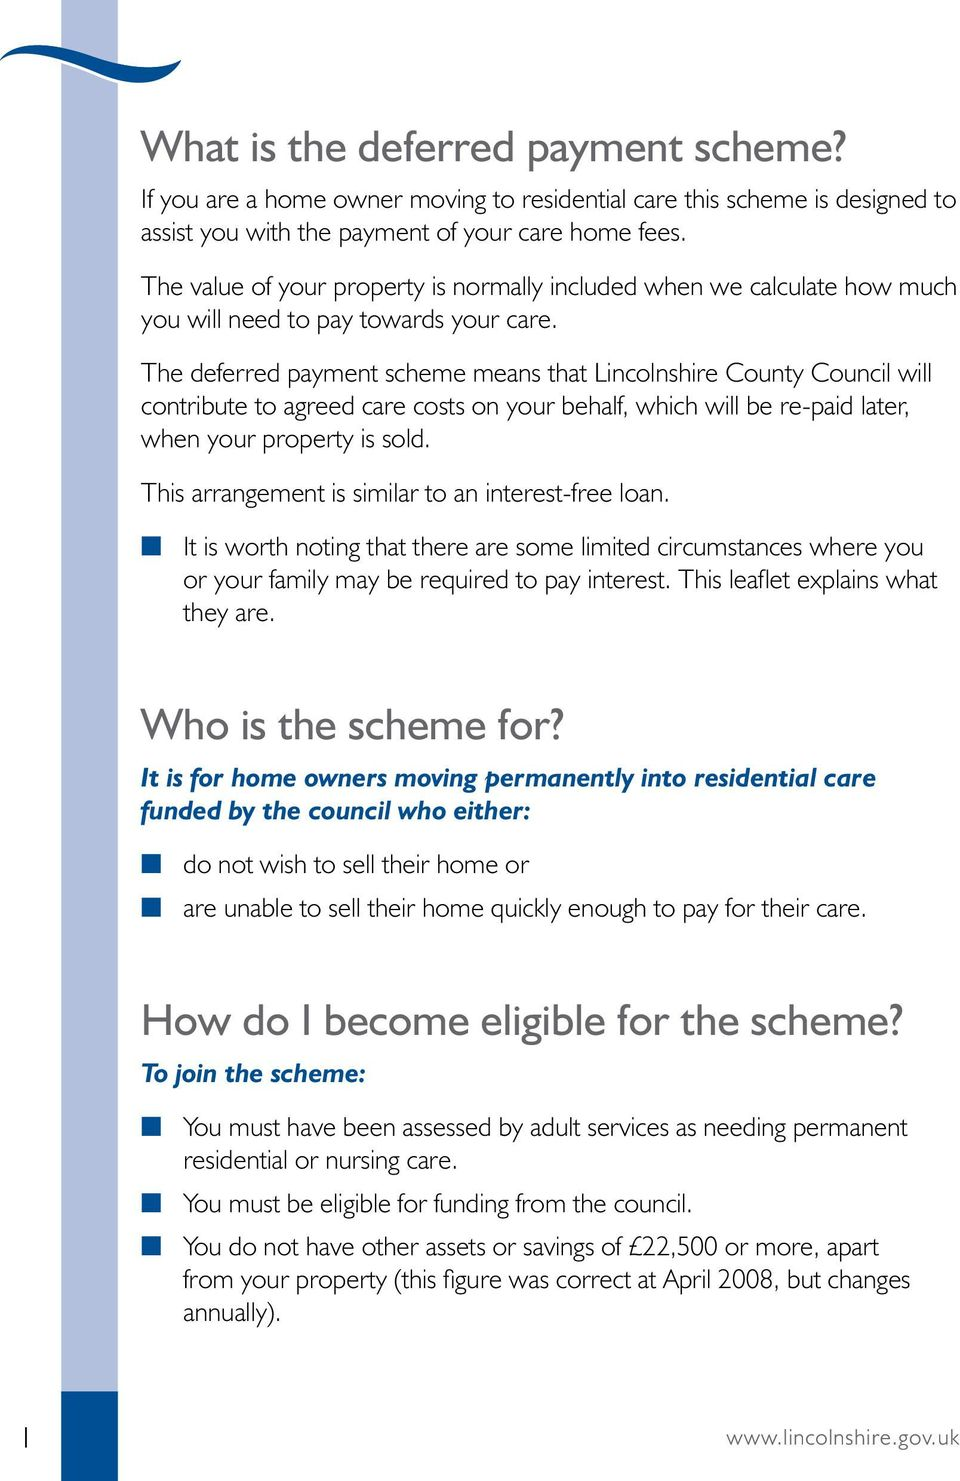 The deferred payment scheme means that Lincolnshire County Council will contribute to agreed care costs on your behalf, which will be re-paid later, when your property is sold.